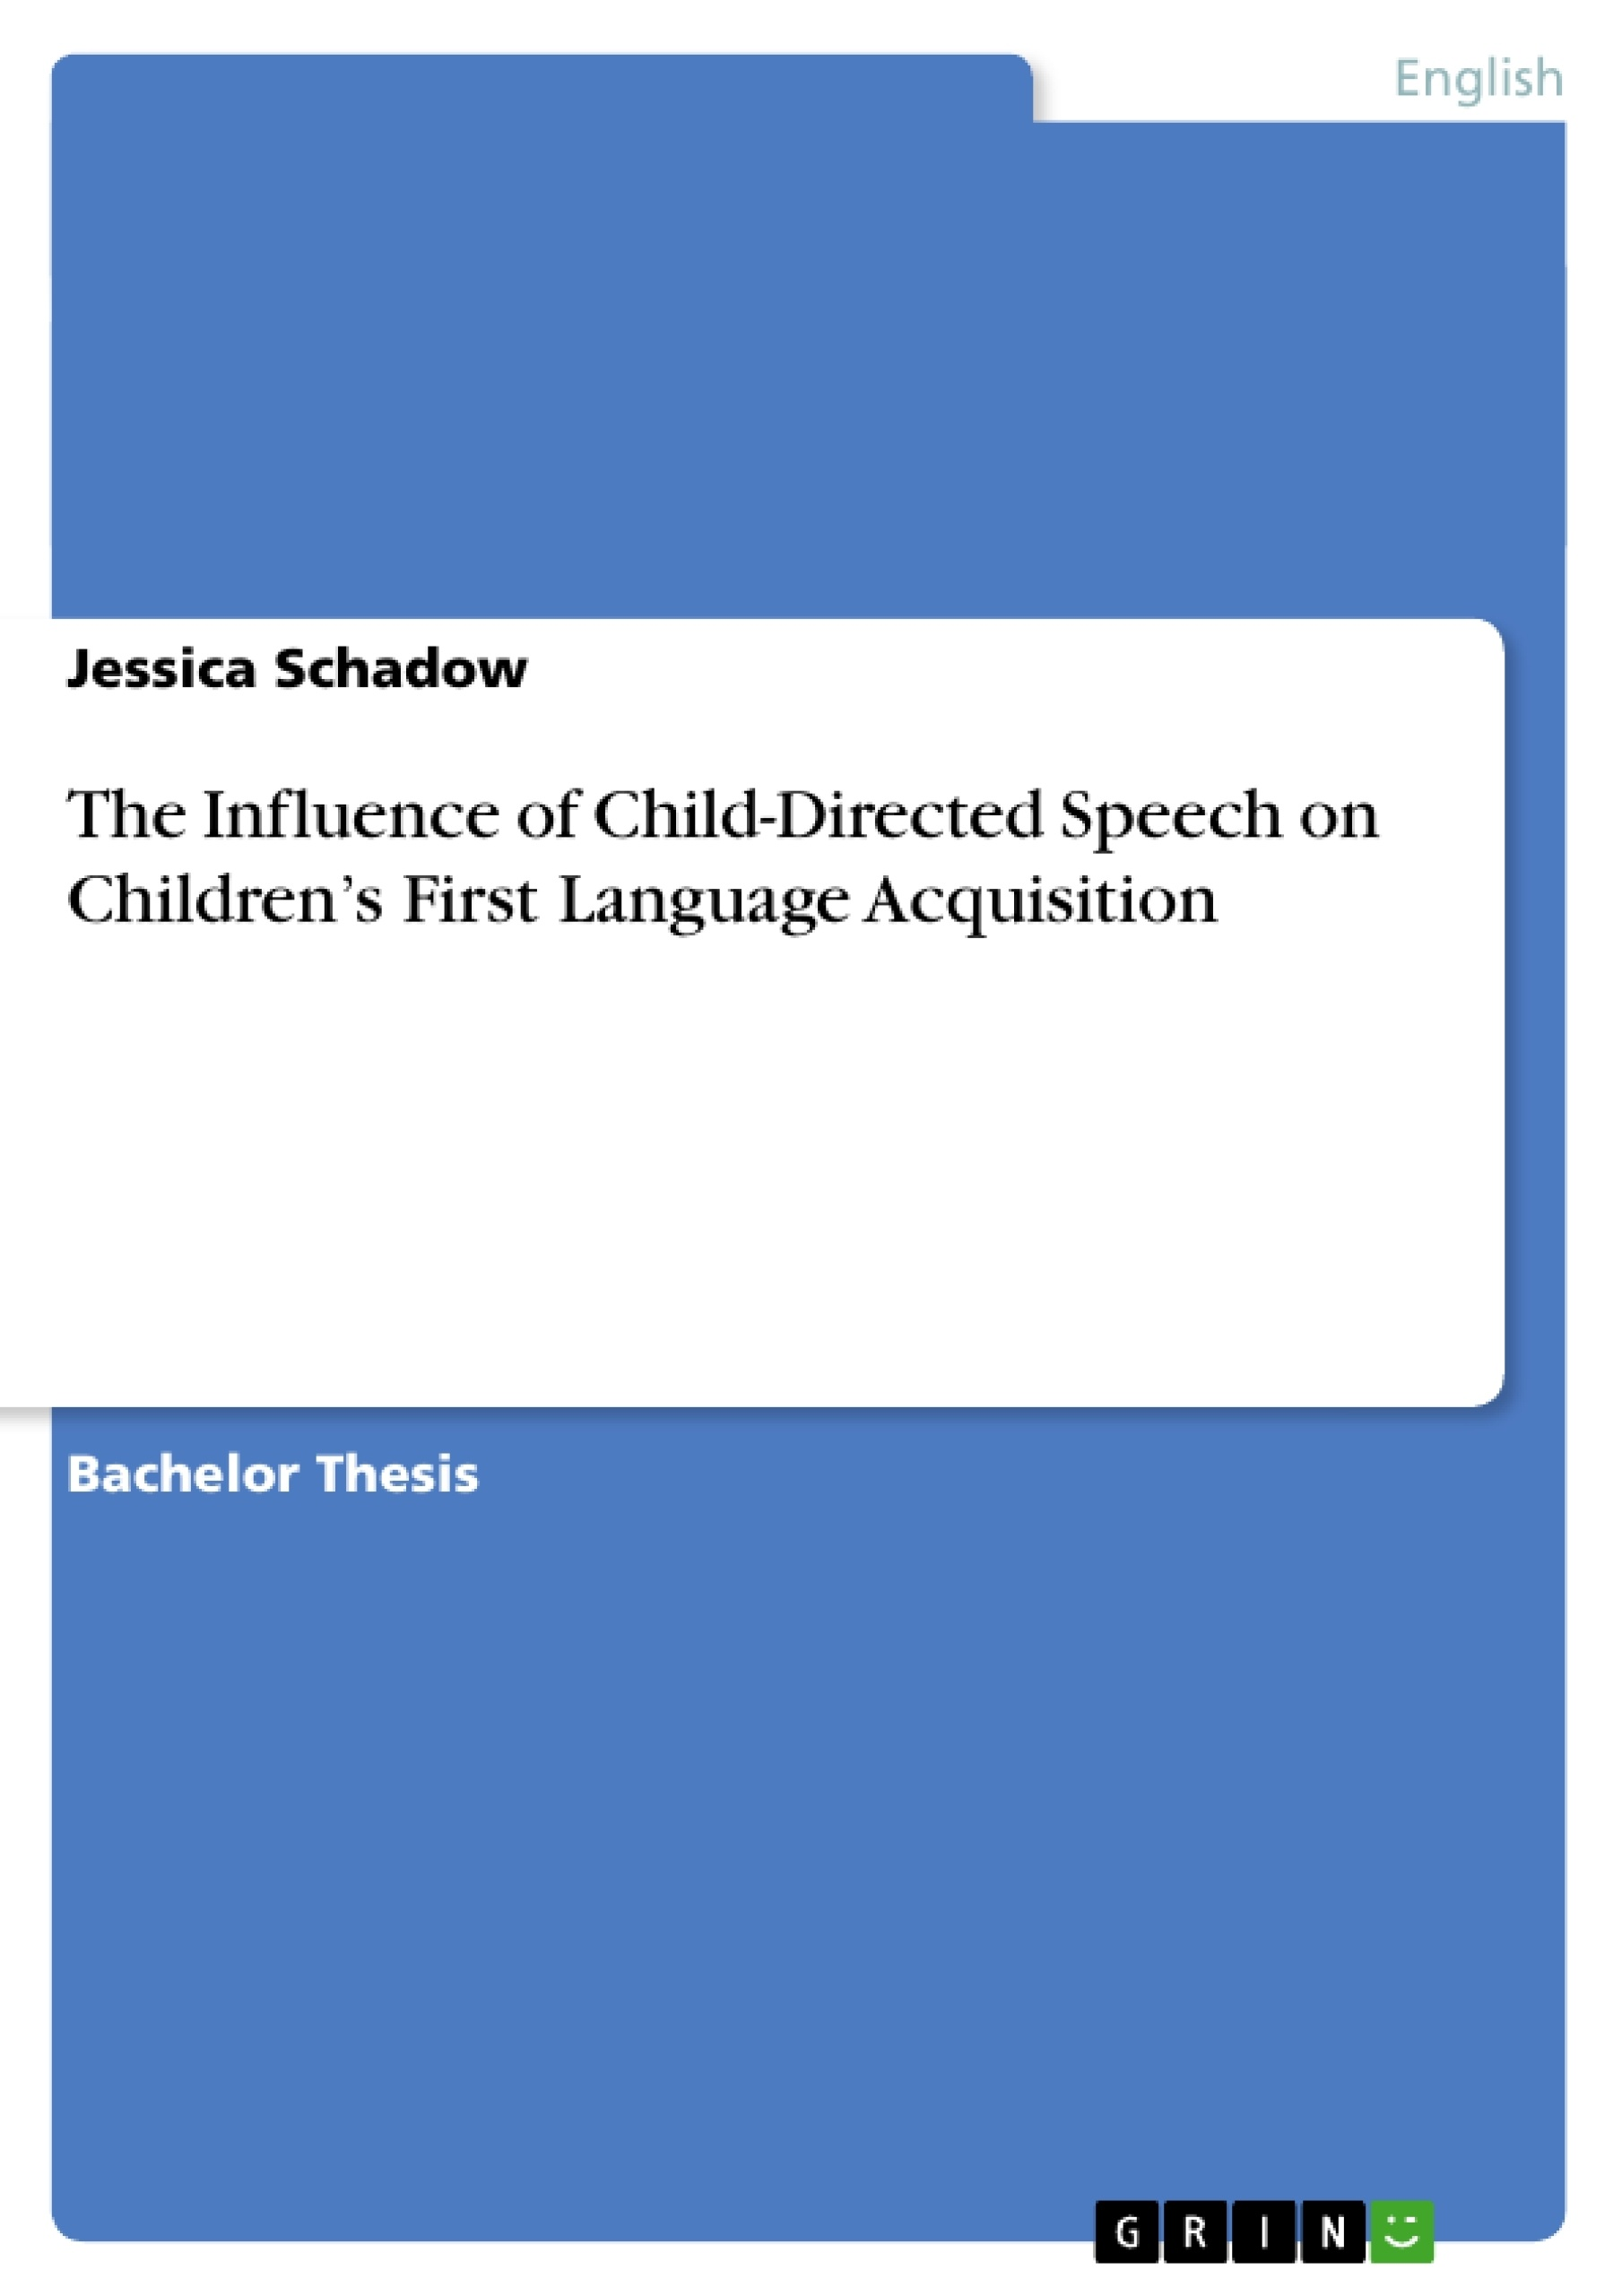 Title: The Influence of Child-Directed Speech on Children's First Language Acquisition